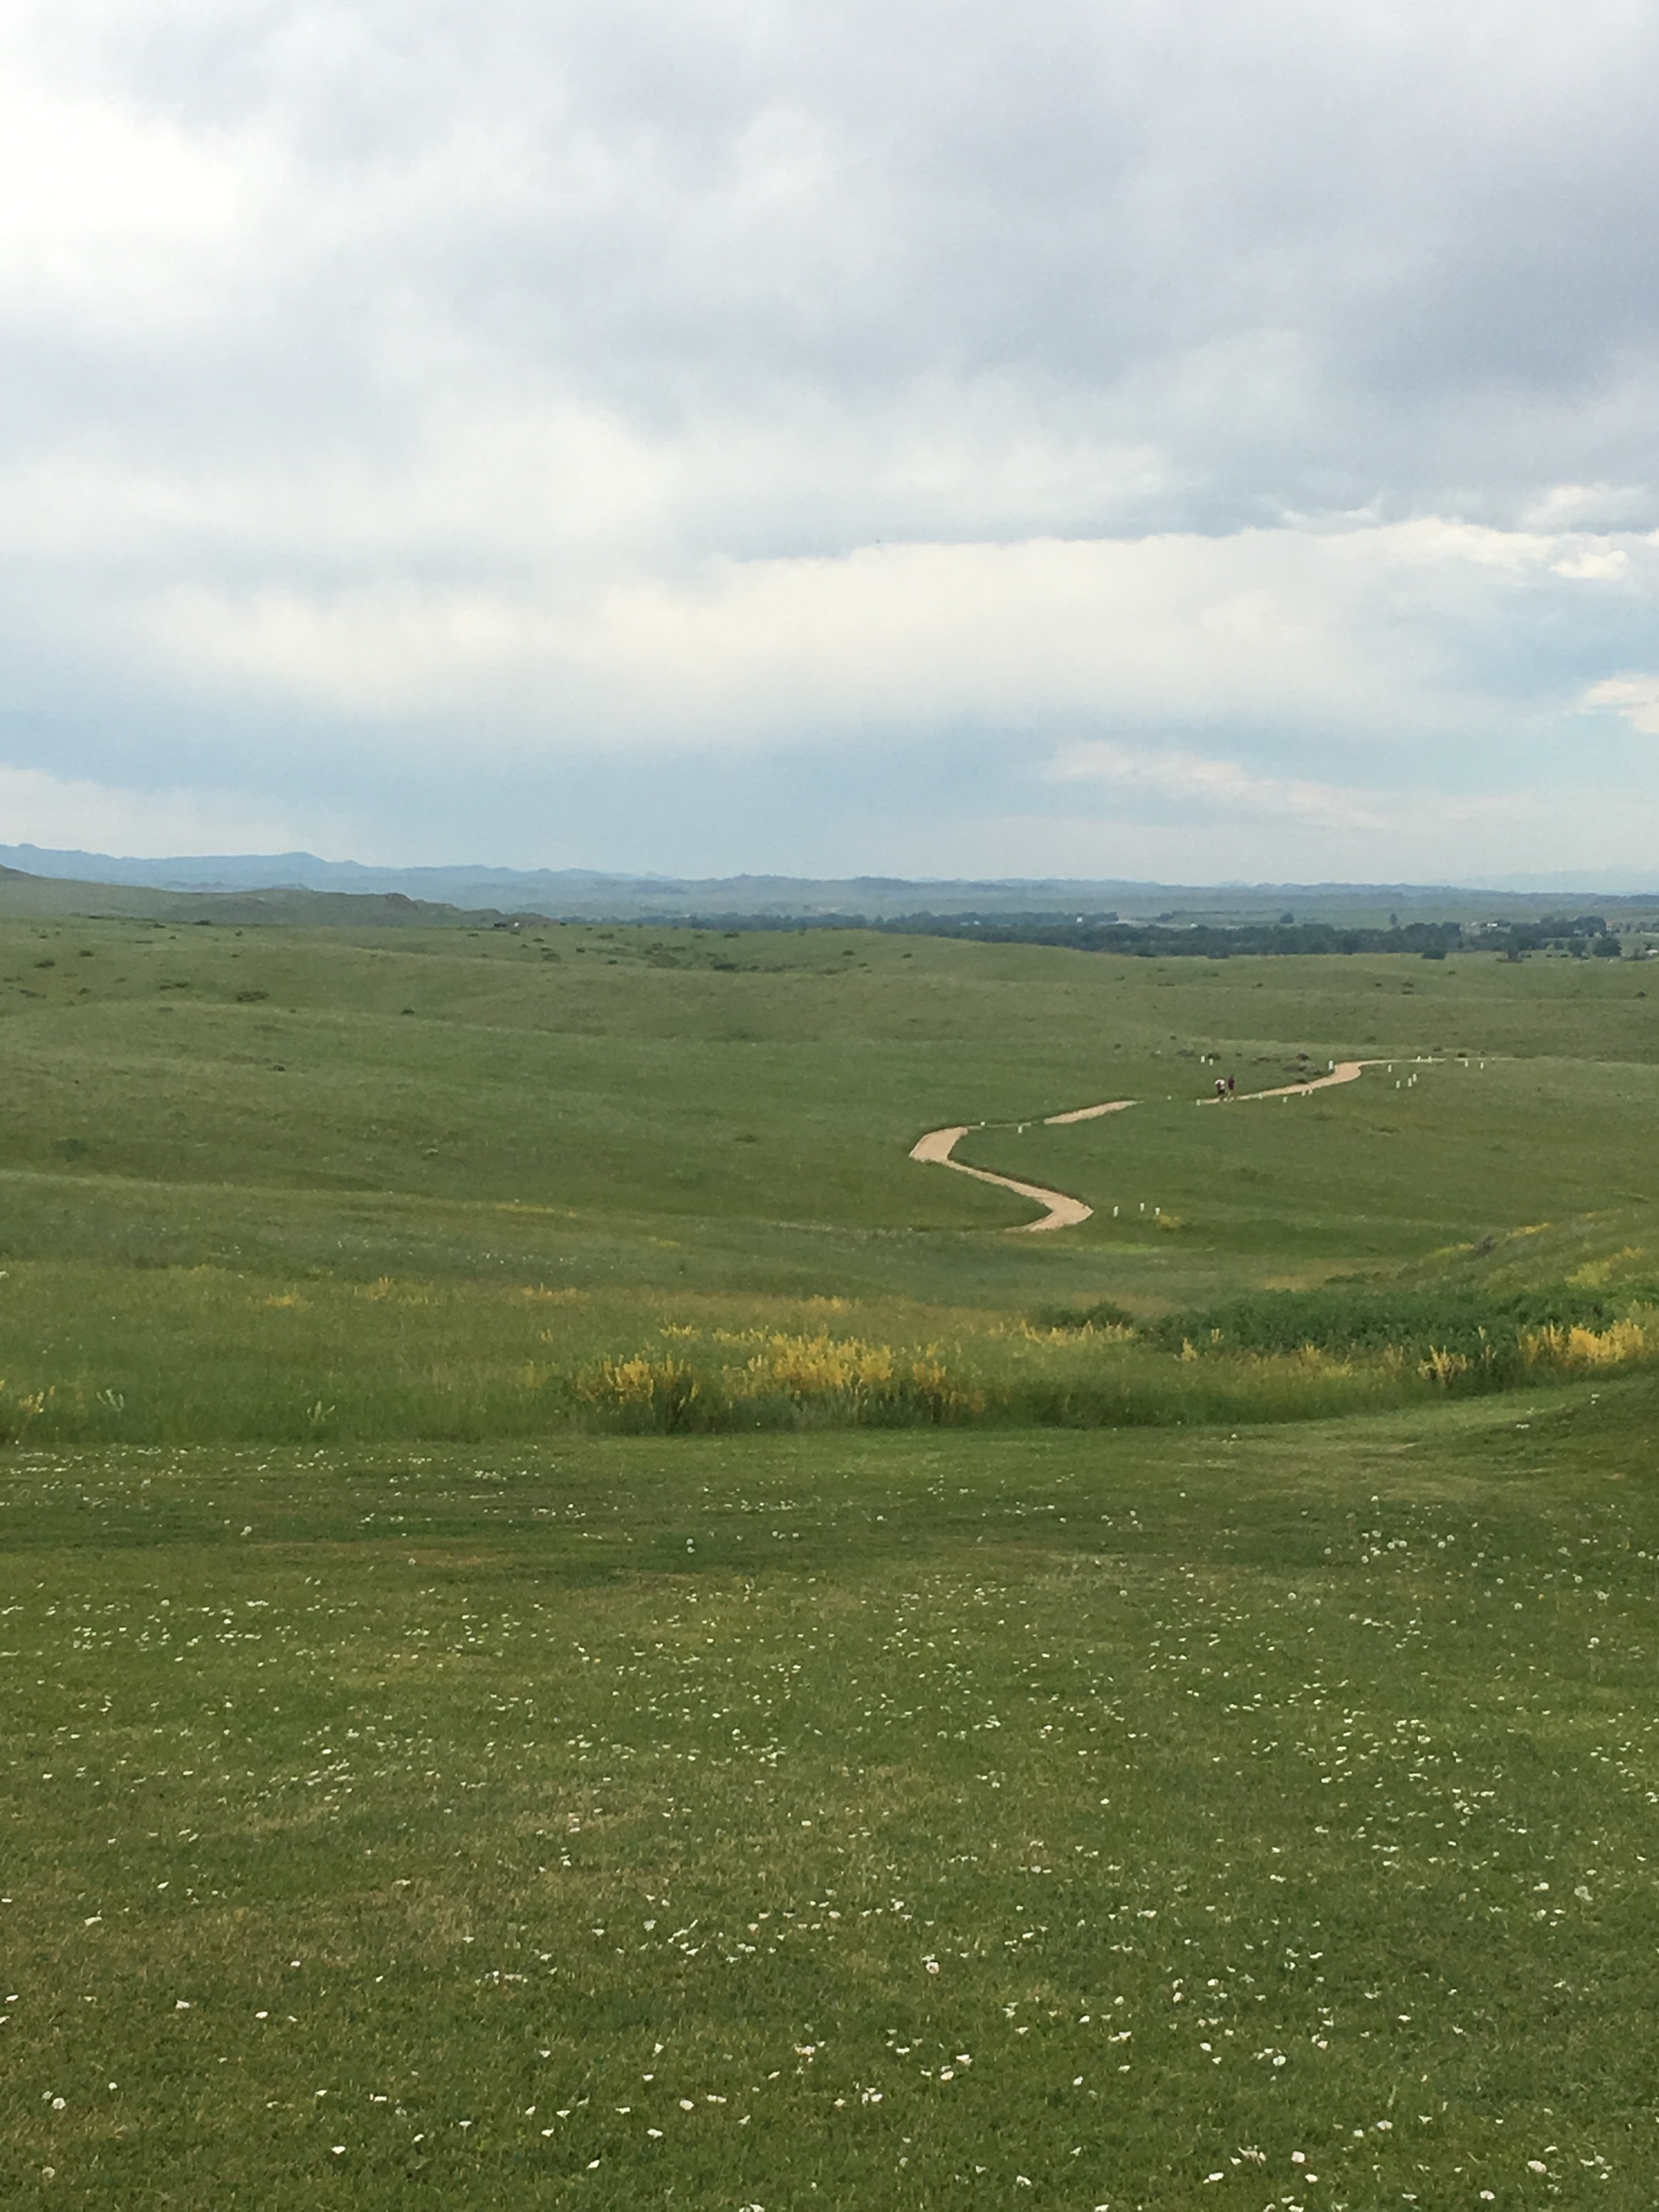 Adventure Van Travels – Middle Fork Campground and Little Bighorn Battlefield National Monument